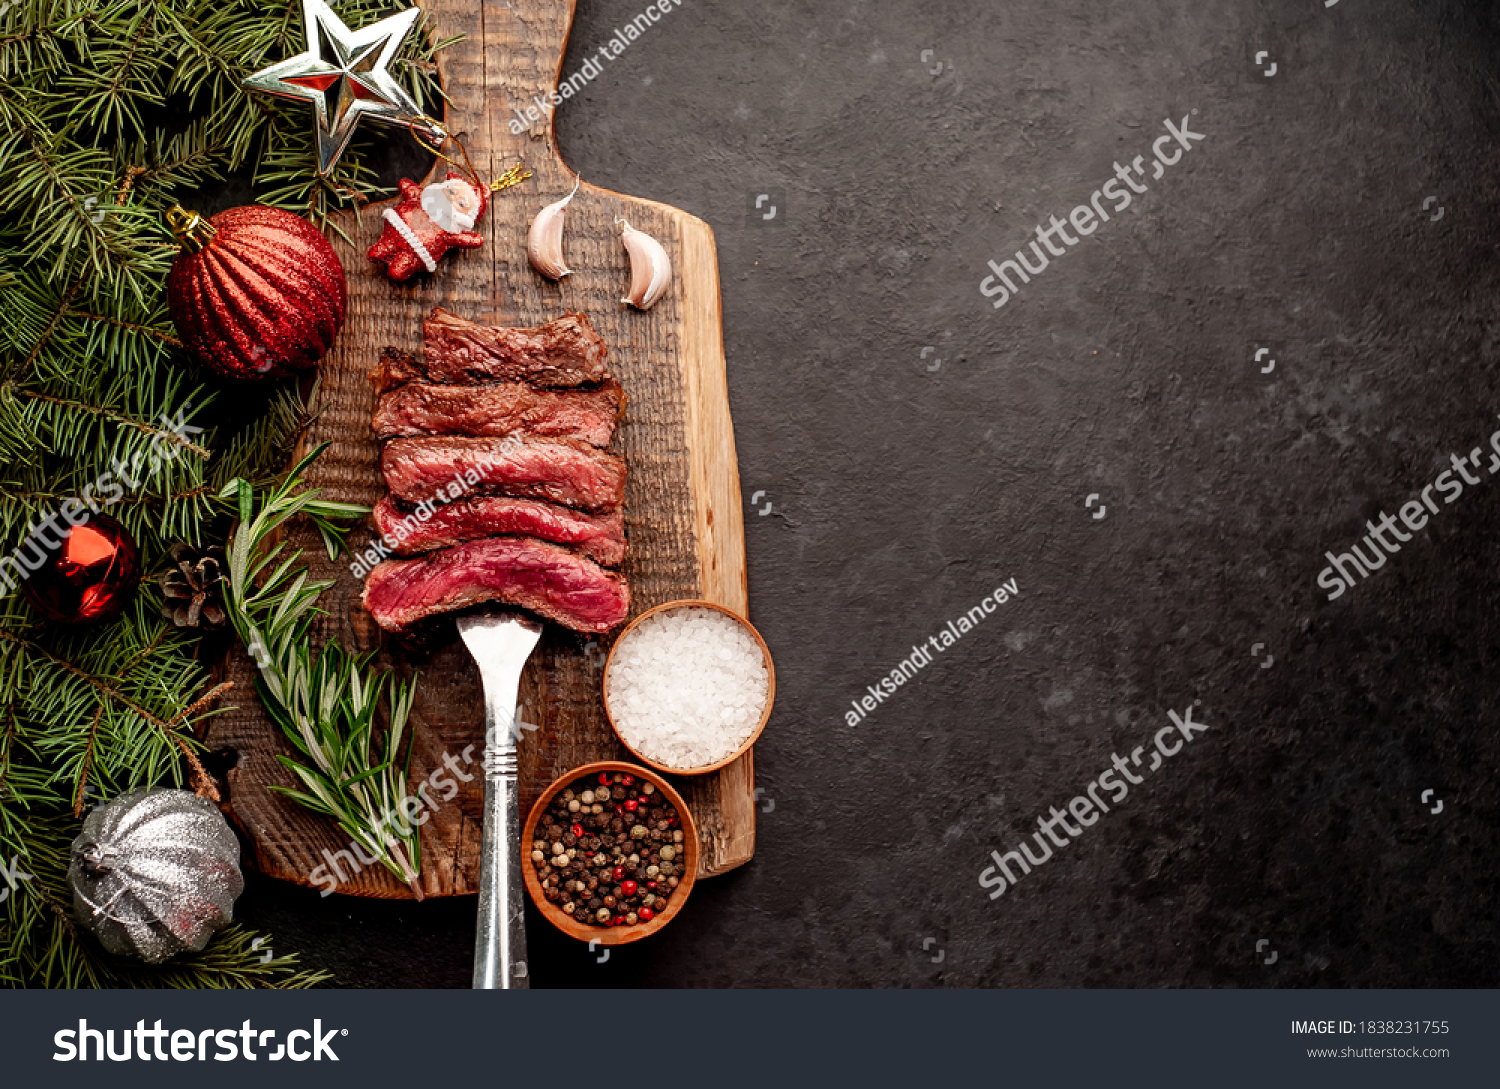 Different degrees of roasting of steak on a meat fork for Christmas on a background of a stone with a spruce and Christmas toys with copy space for your text #1838231755